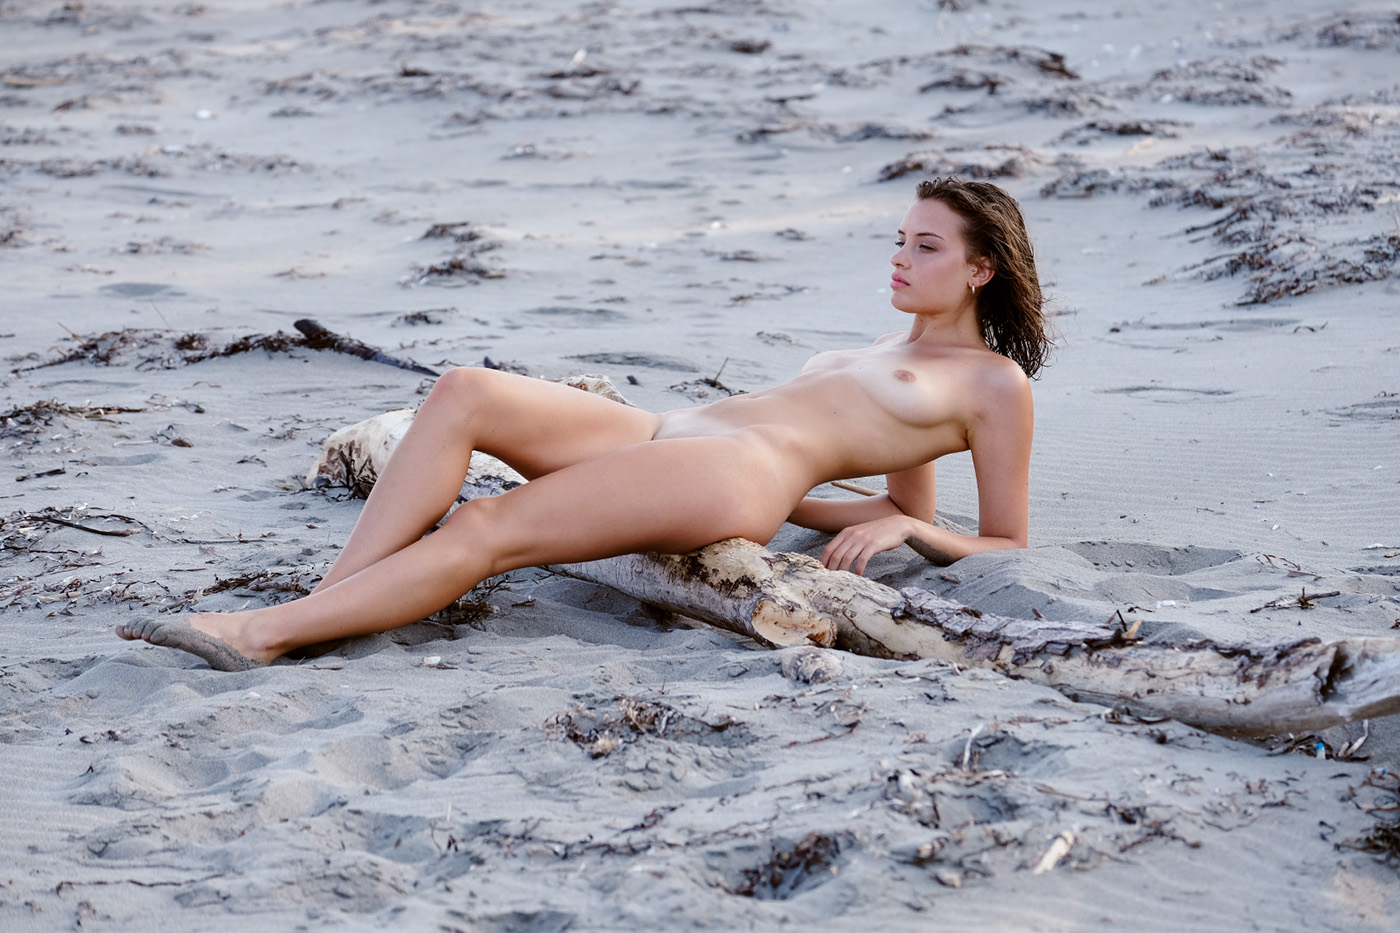 Private Beach - Riven Magazine / фотограф Adolfo Valente